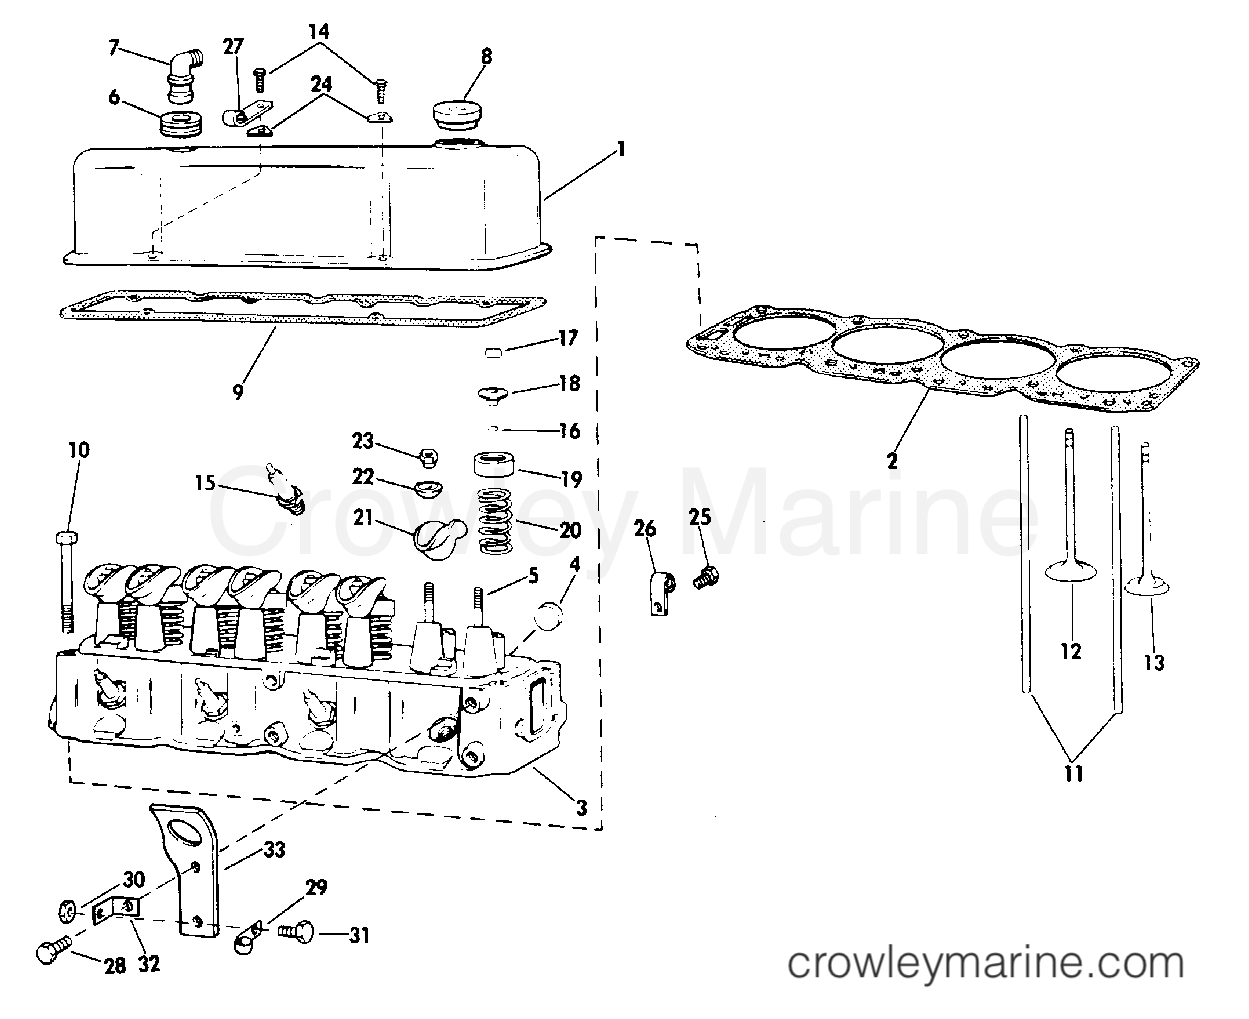 1979 Omc Wiring Diagram Expert Schematics 40 Hp Johnson Outboard Hecho 79 Sterndrive Trusted 2005 Evinrude 115